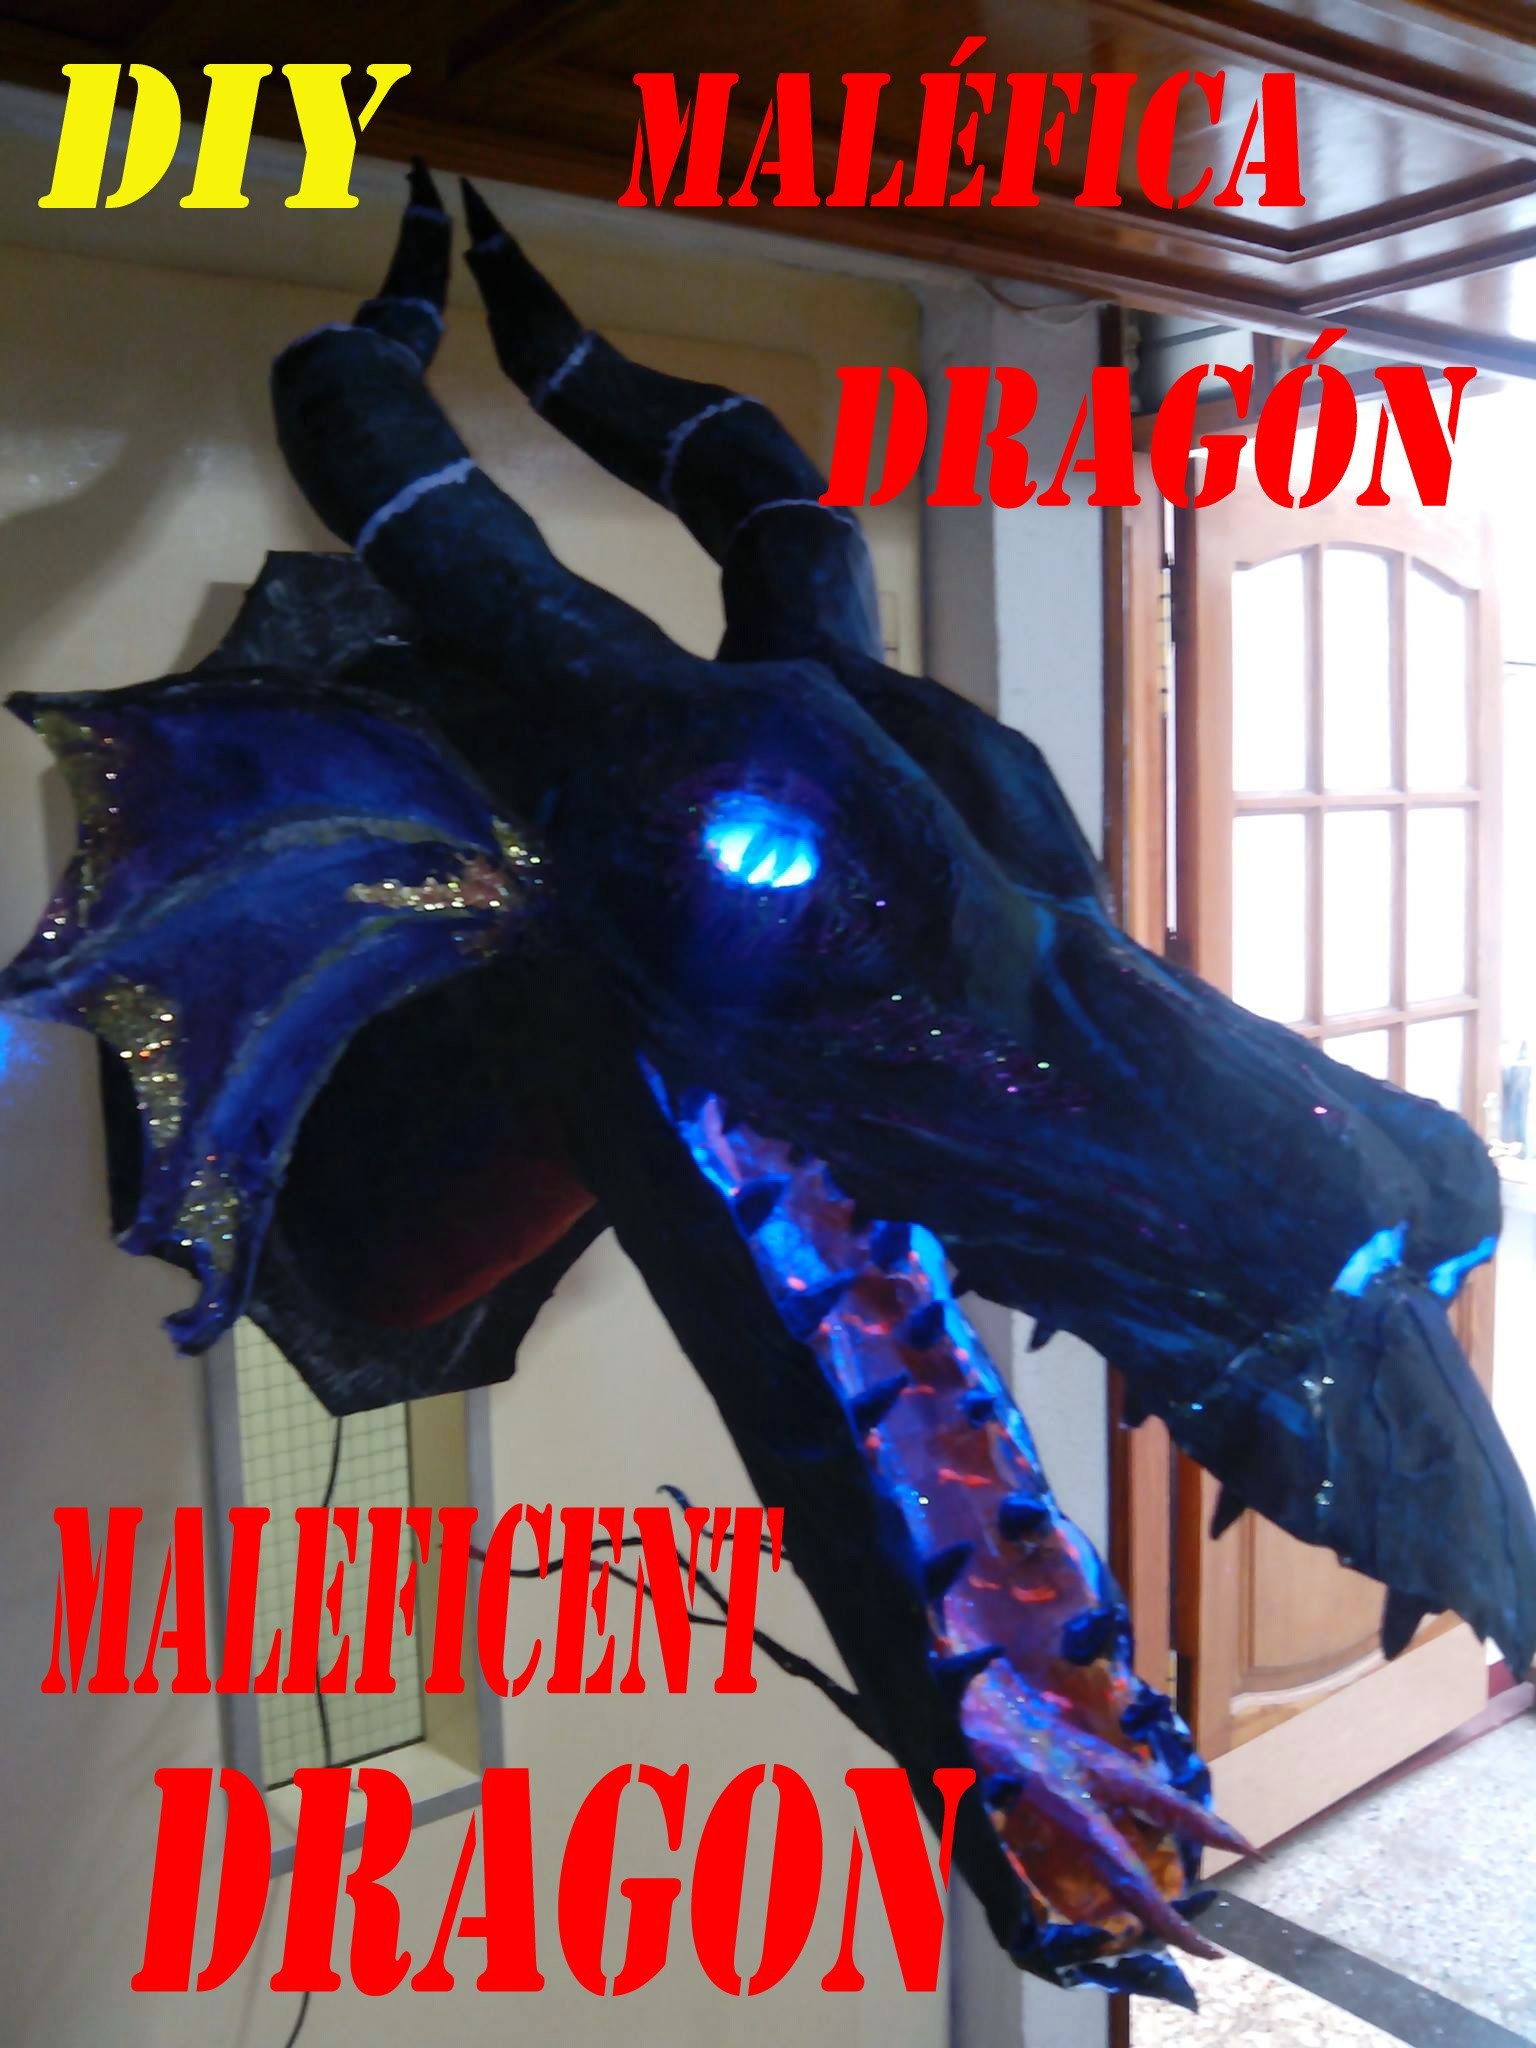 DRAGÓN MALÉFICA, MALEFICENT DRAGON